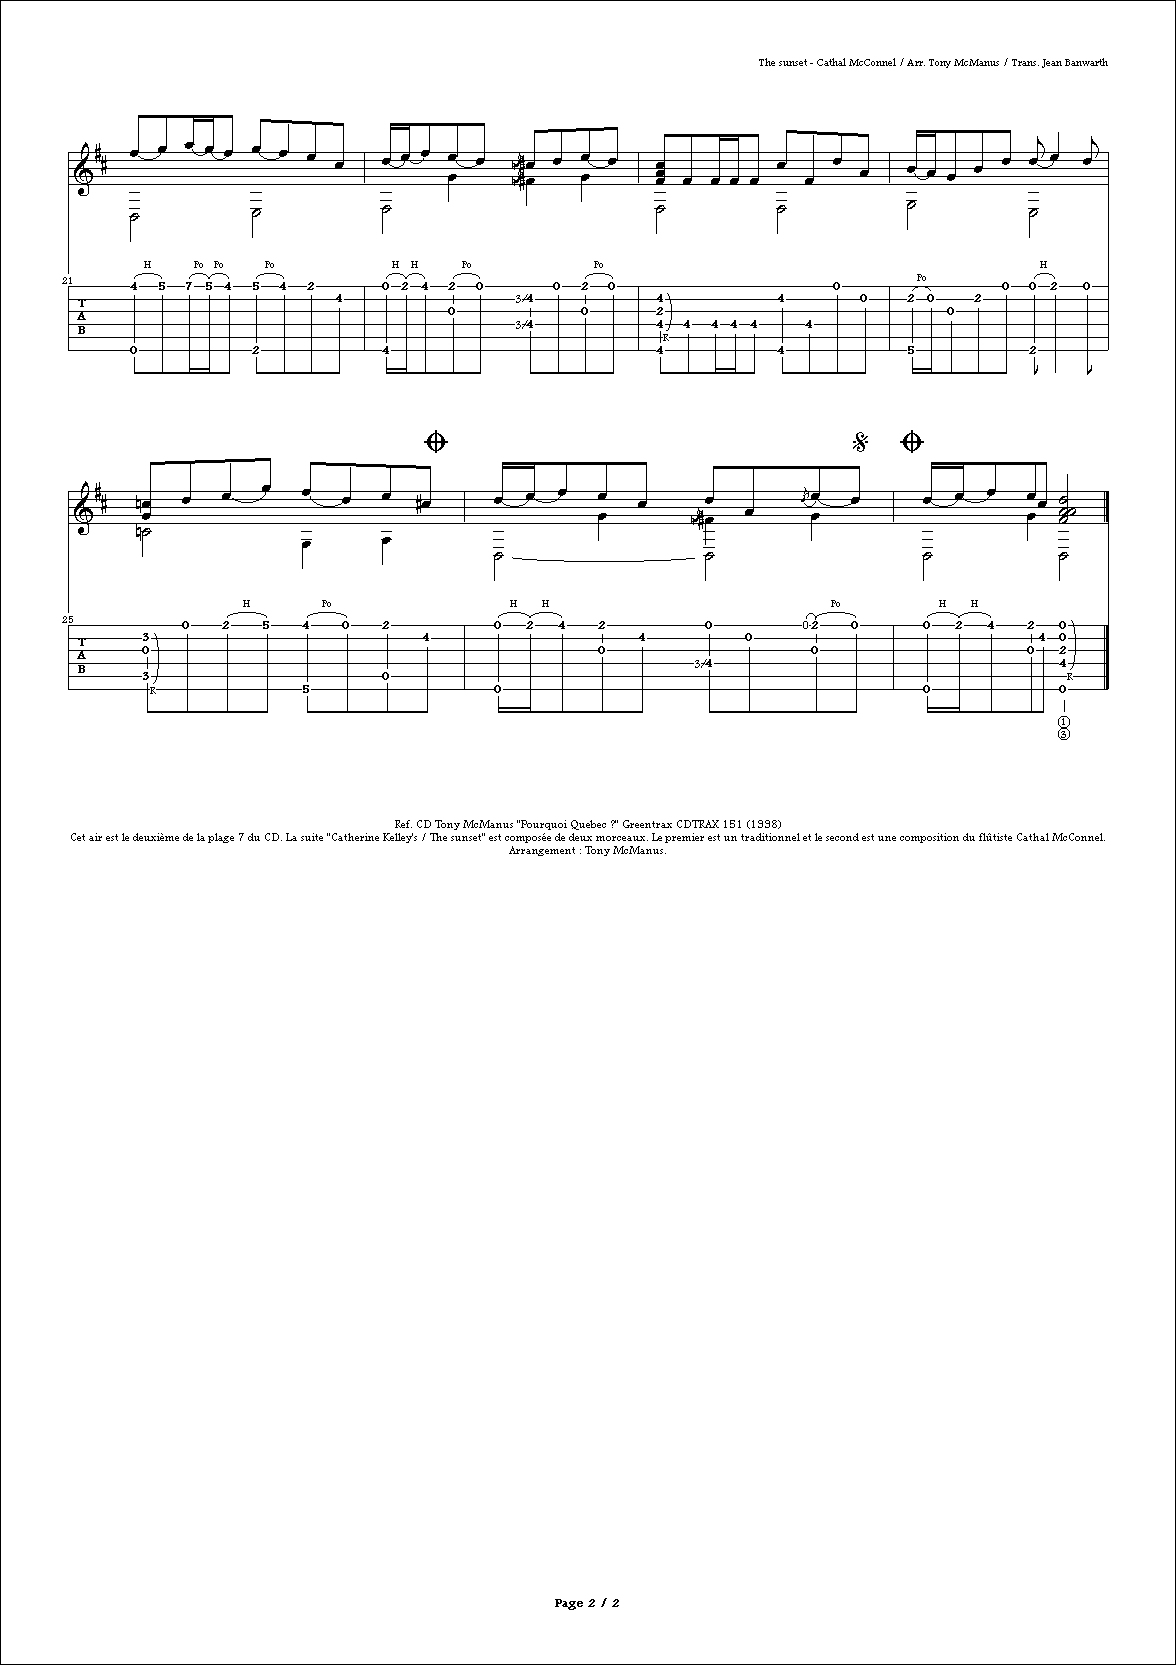 airs et tablatures de flatpicking